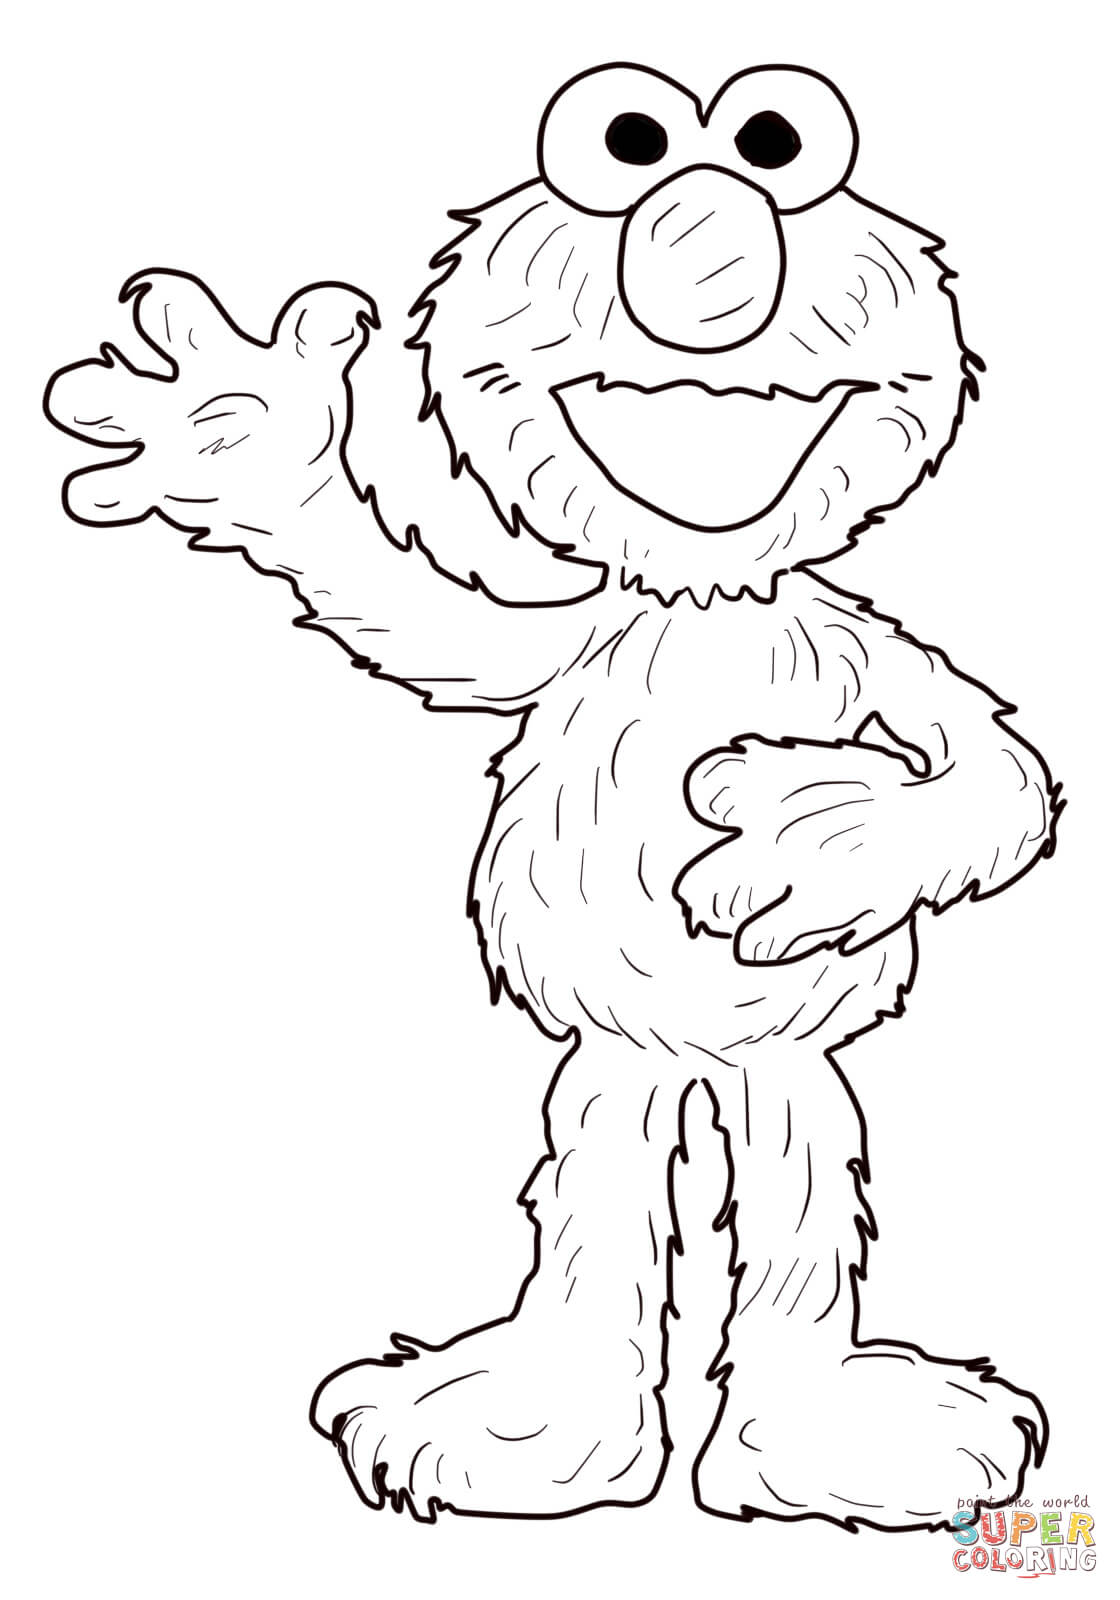 Elmo Waving Hello Coloring Page